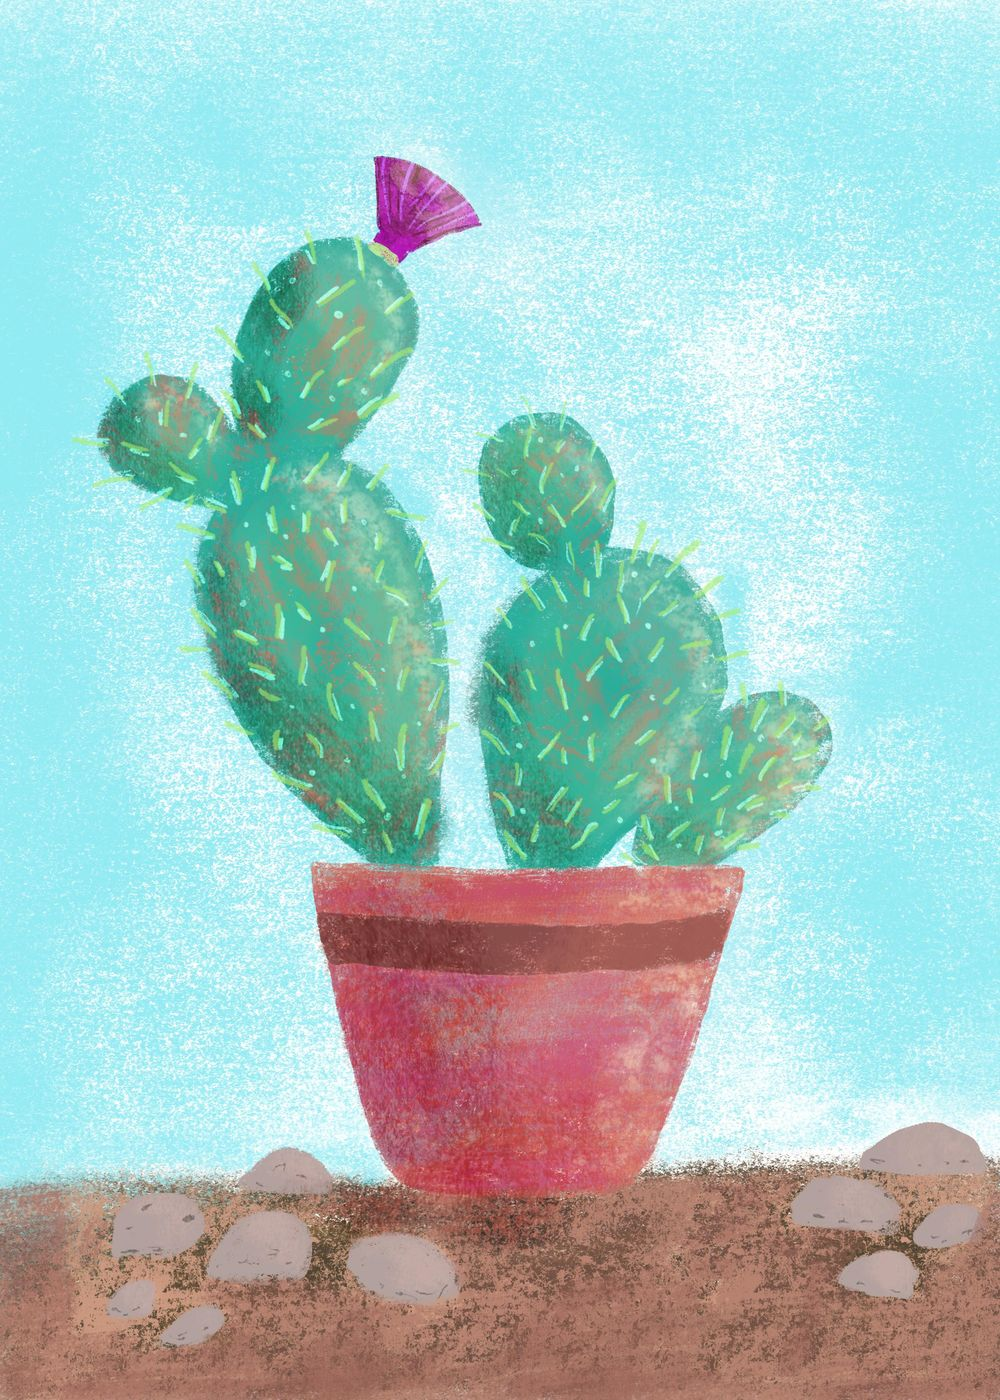 textured cactus - image 1 - student project